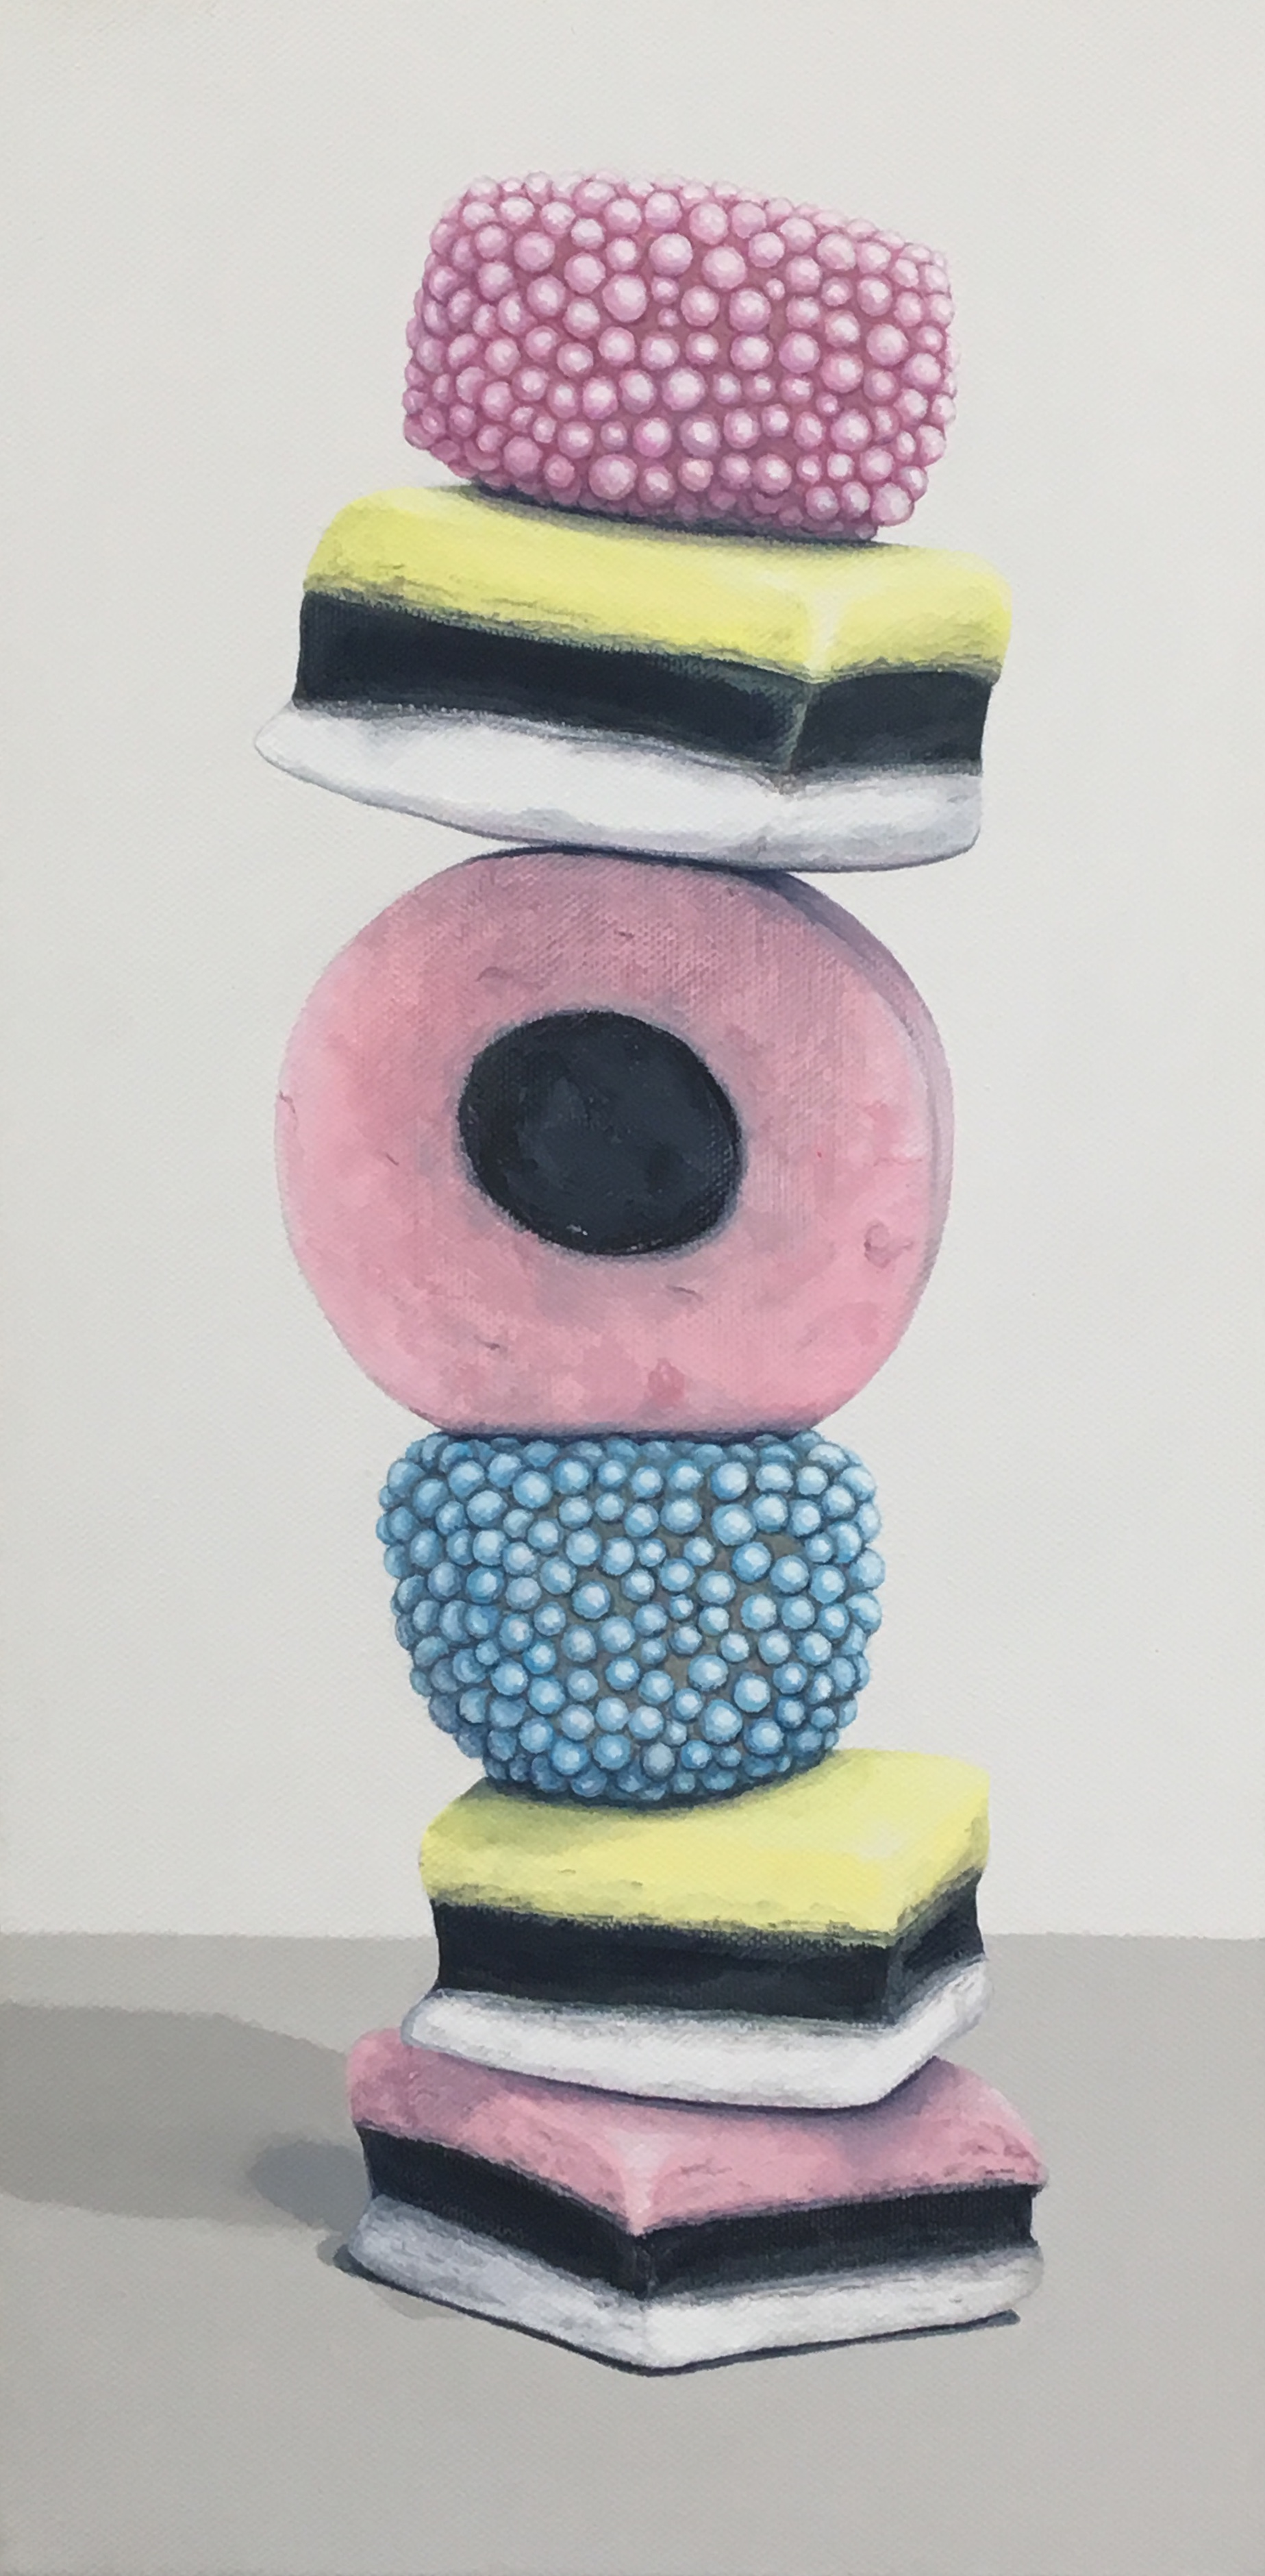 """Totem: Allsorts I   This totem is composed of bright licorice candies. Allsorts are enchanting shapes and colors, including some enticing gelatin nonpareils covered pieces. The first try can be a taste disaster for those who do not adore licorice but are tempted by the all sorts' delightful appearance.   Currently available through Simon Breitbard Fine Arts   http://sbfinearts.com ,  415-951-1969   8"""" x 16"""" gallery wrapped canvas  $400.00   SOLD"""